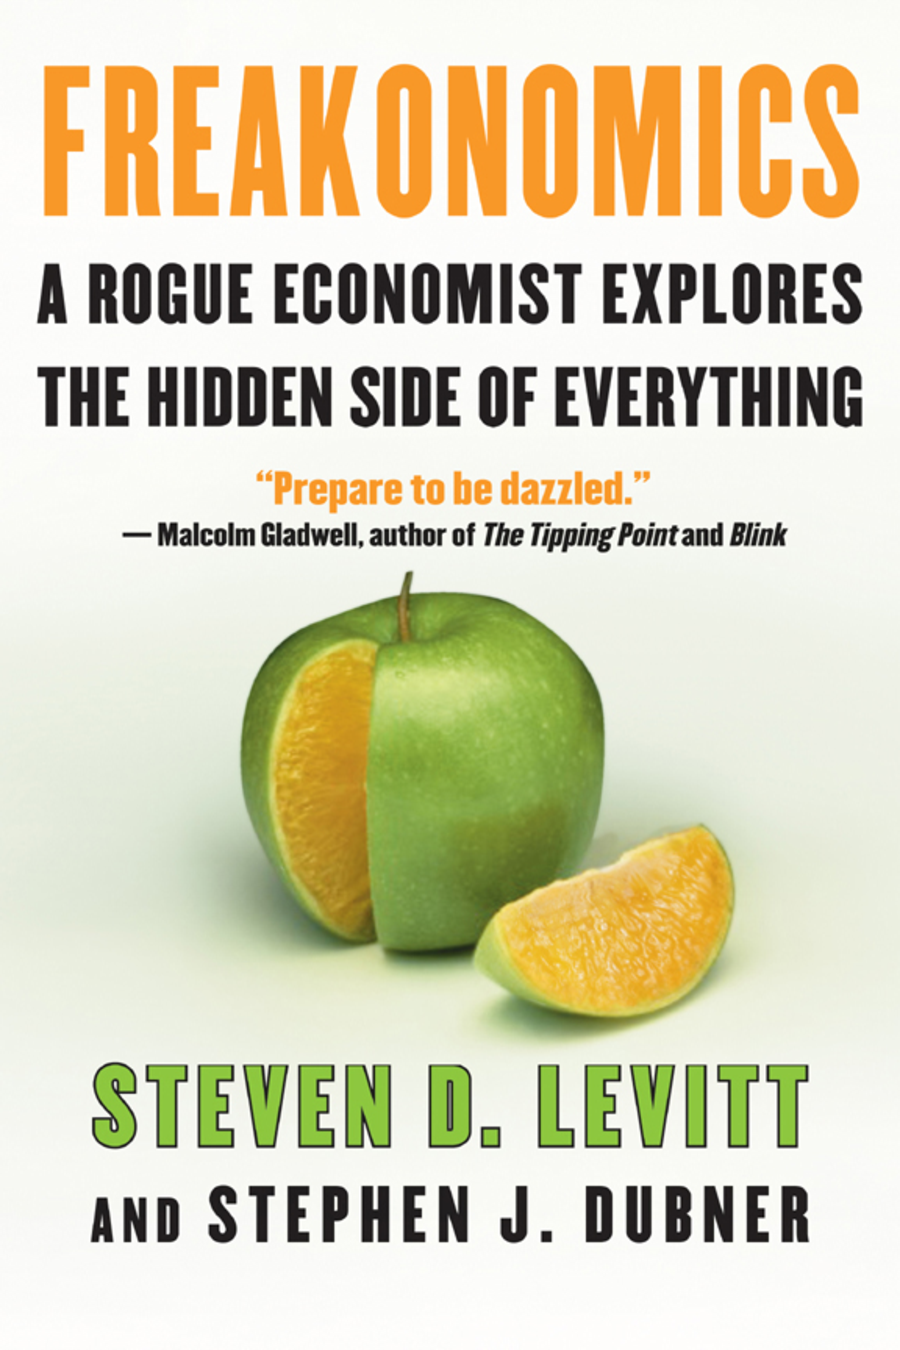 Freakonomics – Steven D. Levit and Stephen J. Dubner